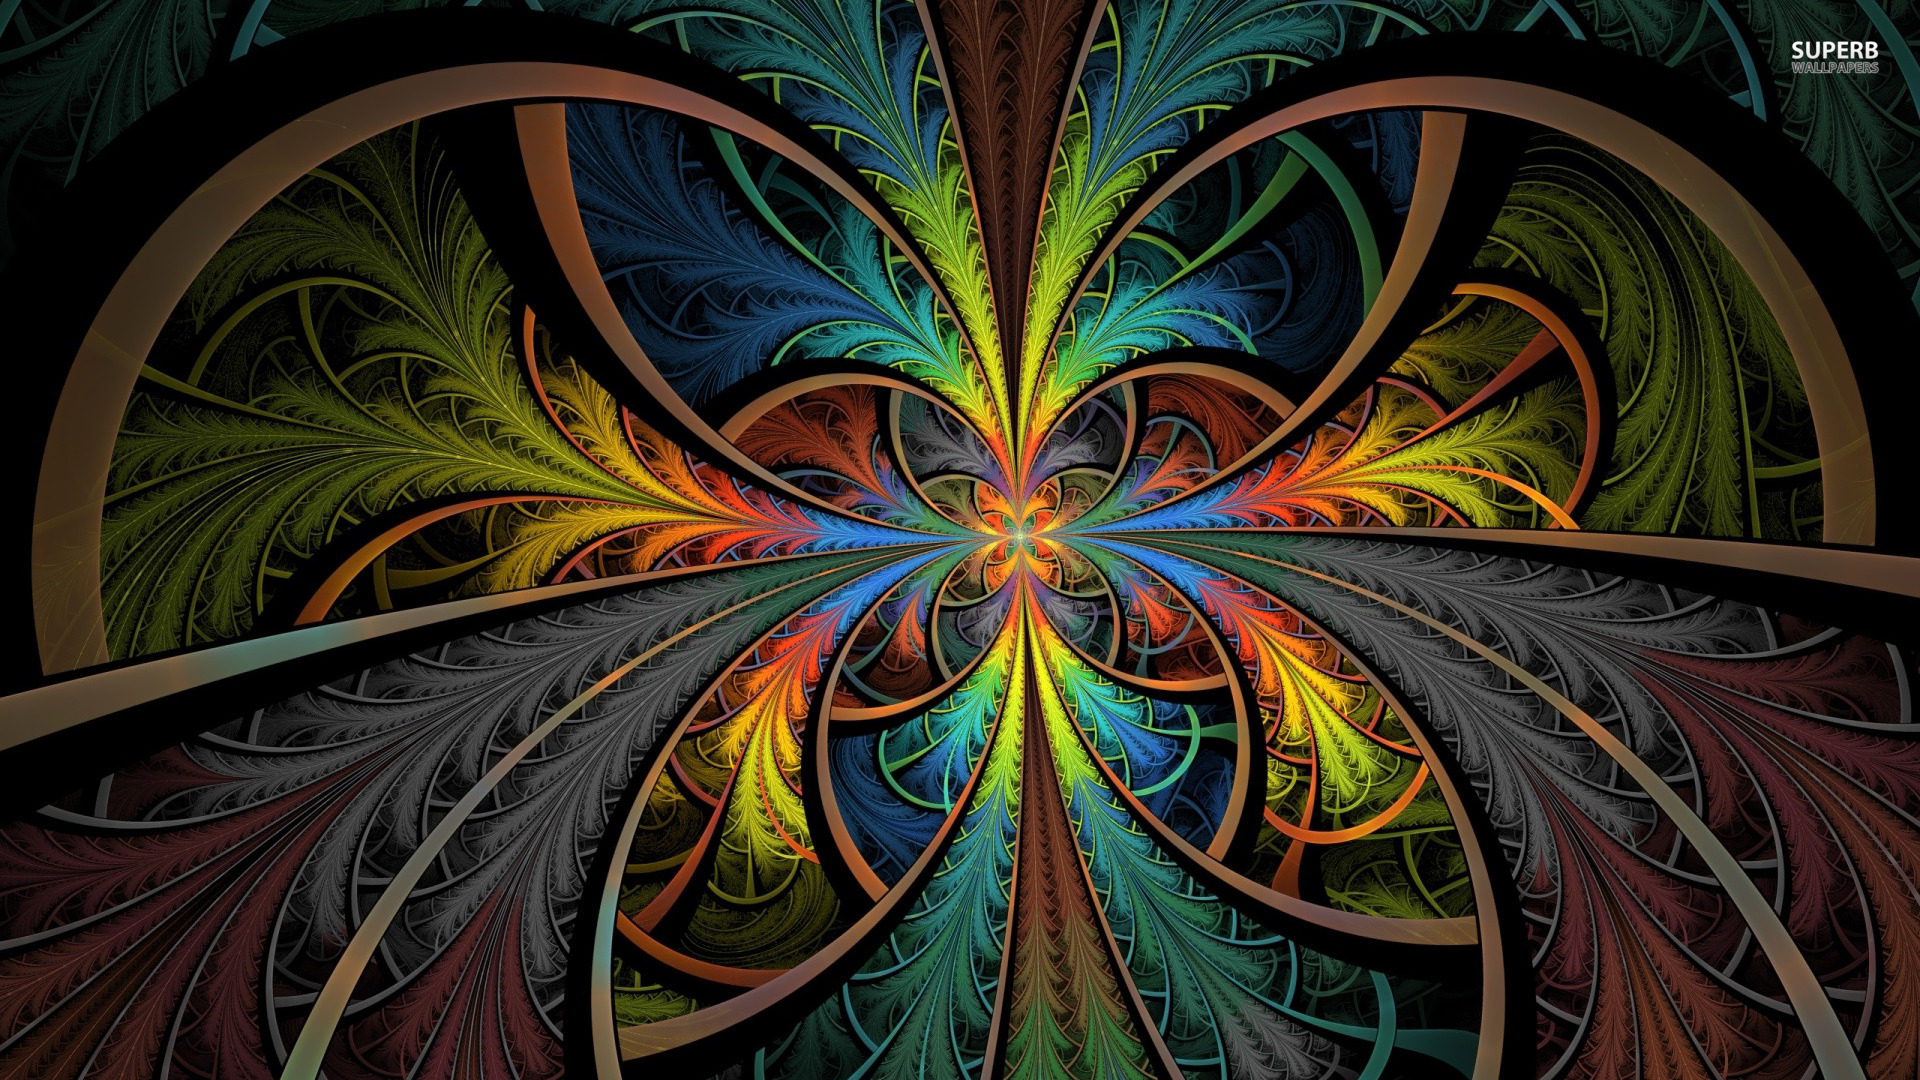 48 psychedelic hd wallpaper widescreen 1920x1080 on wallpapersafari - Psychedelic wallpaper hd ...